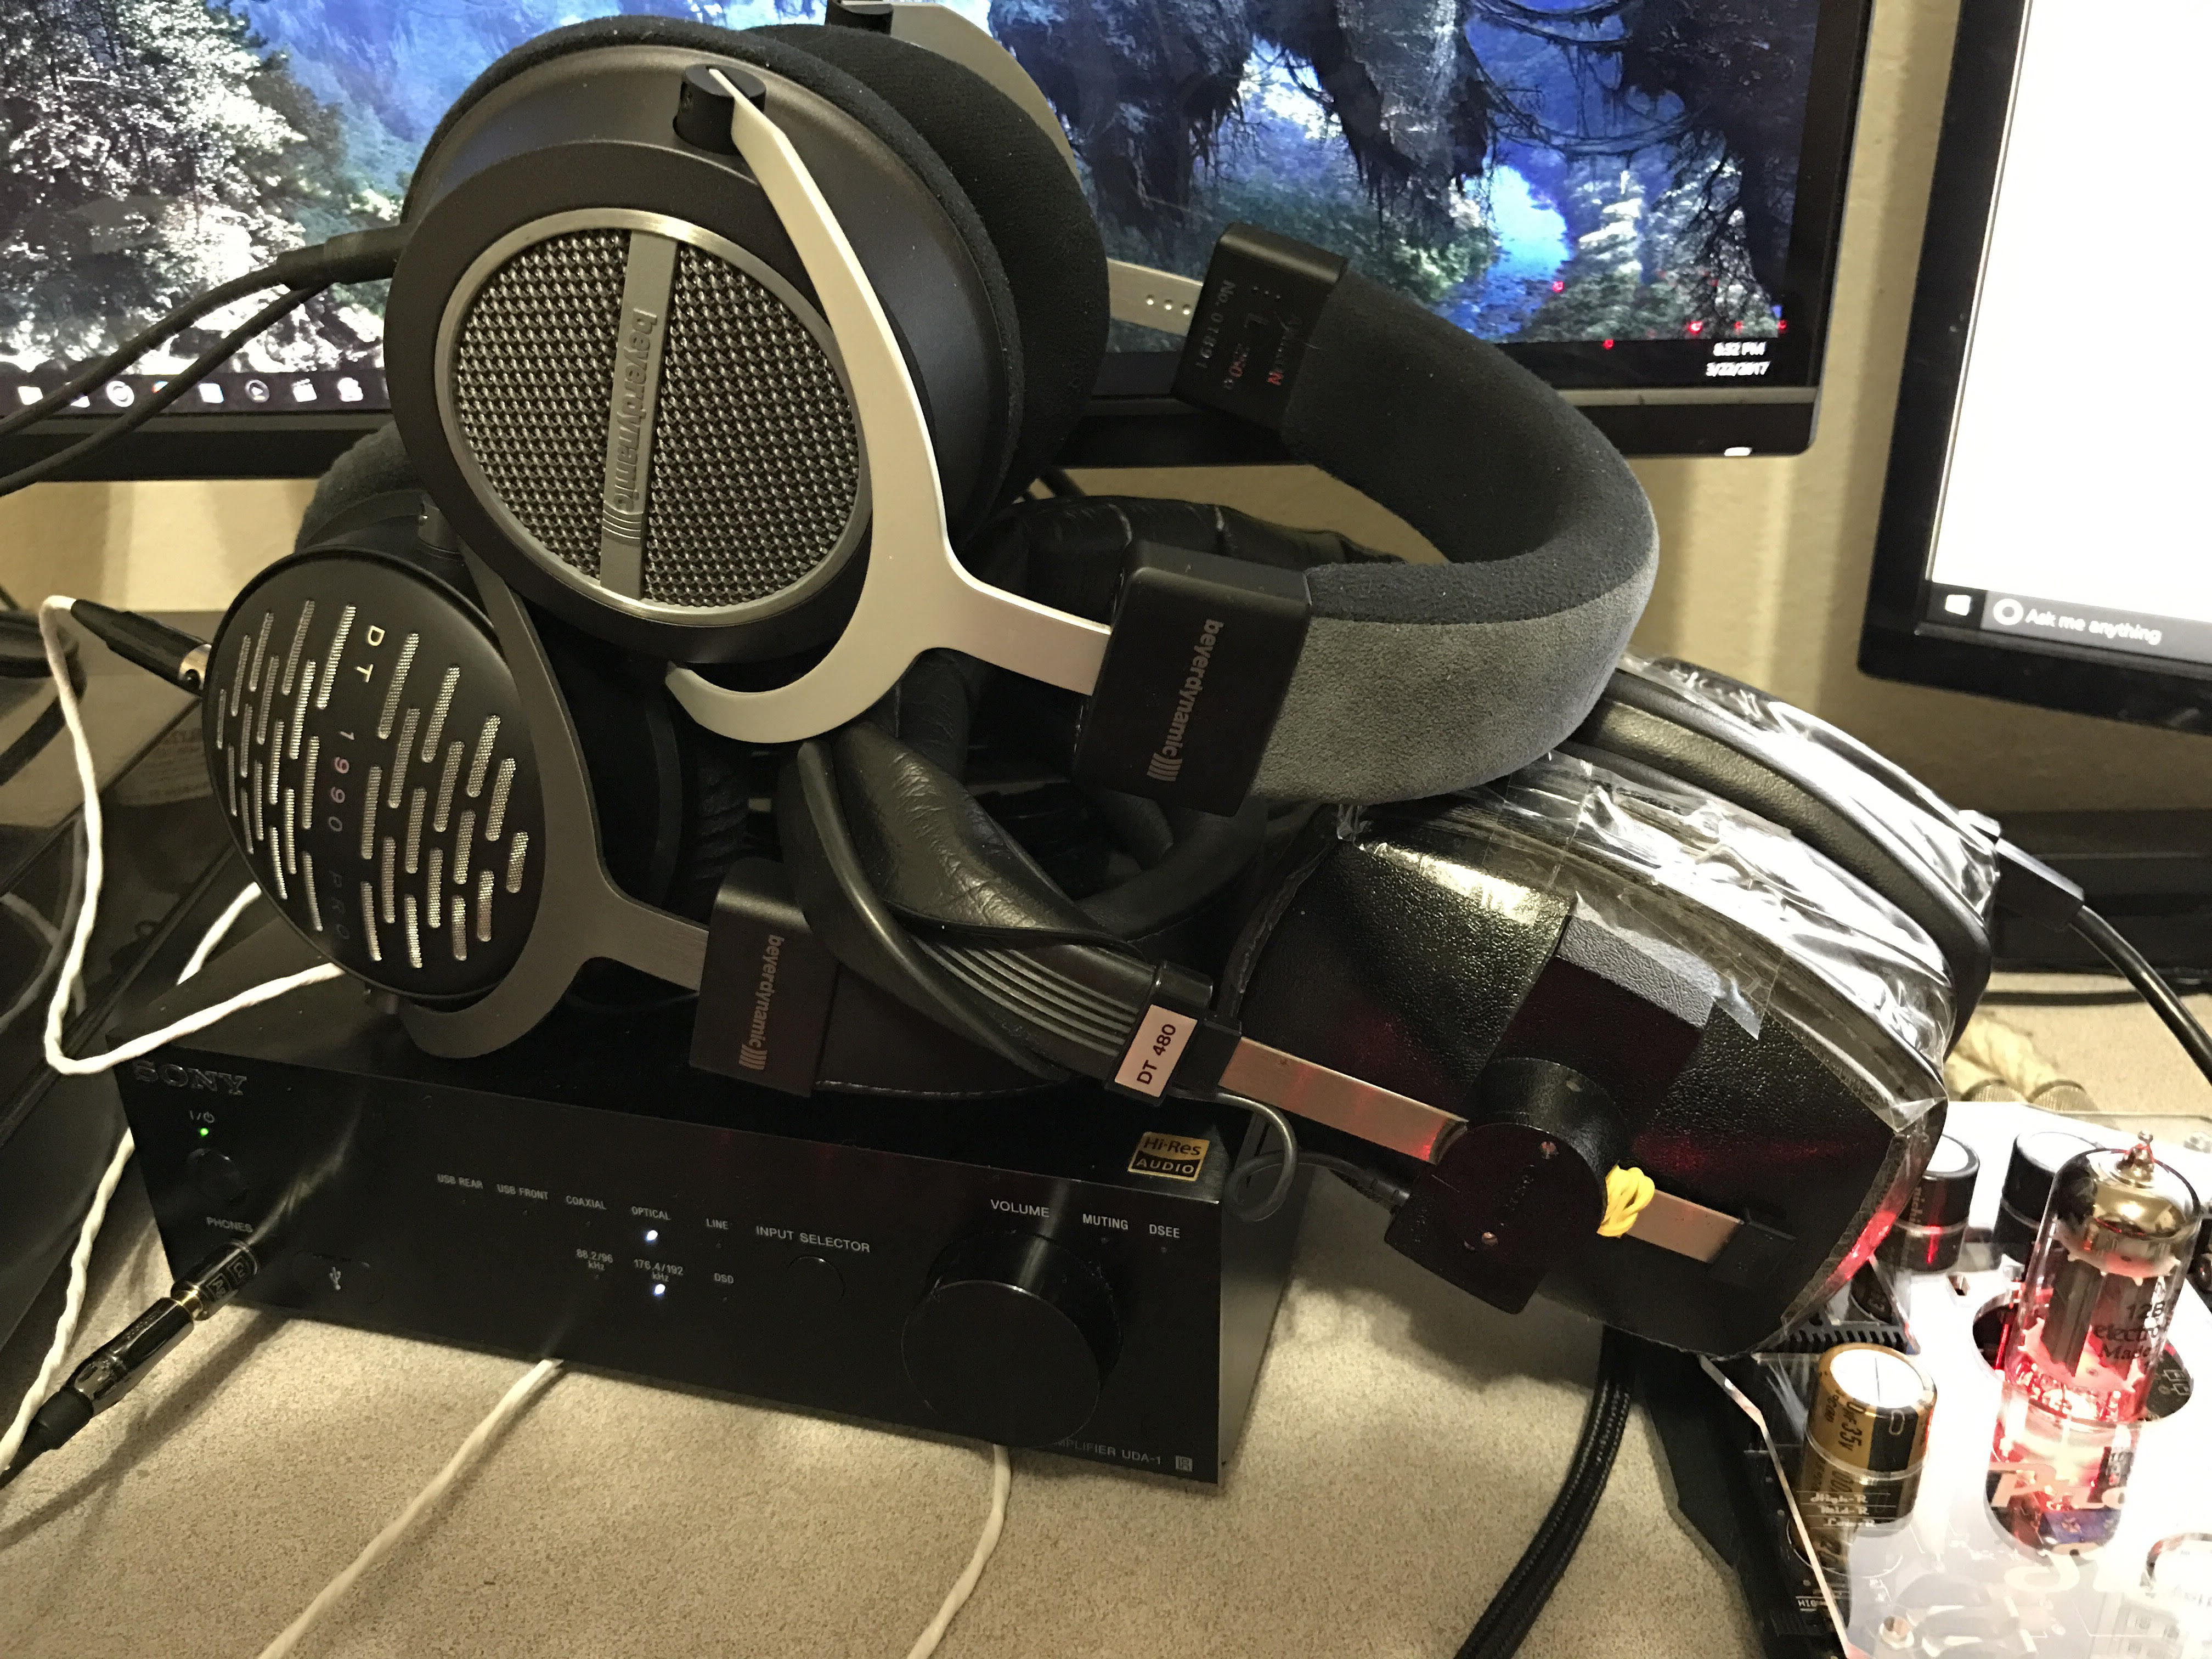 Beyerdynamic DT 480 | Headphone Reviews and Discussion - Head-Fi.org